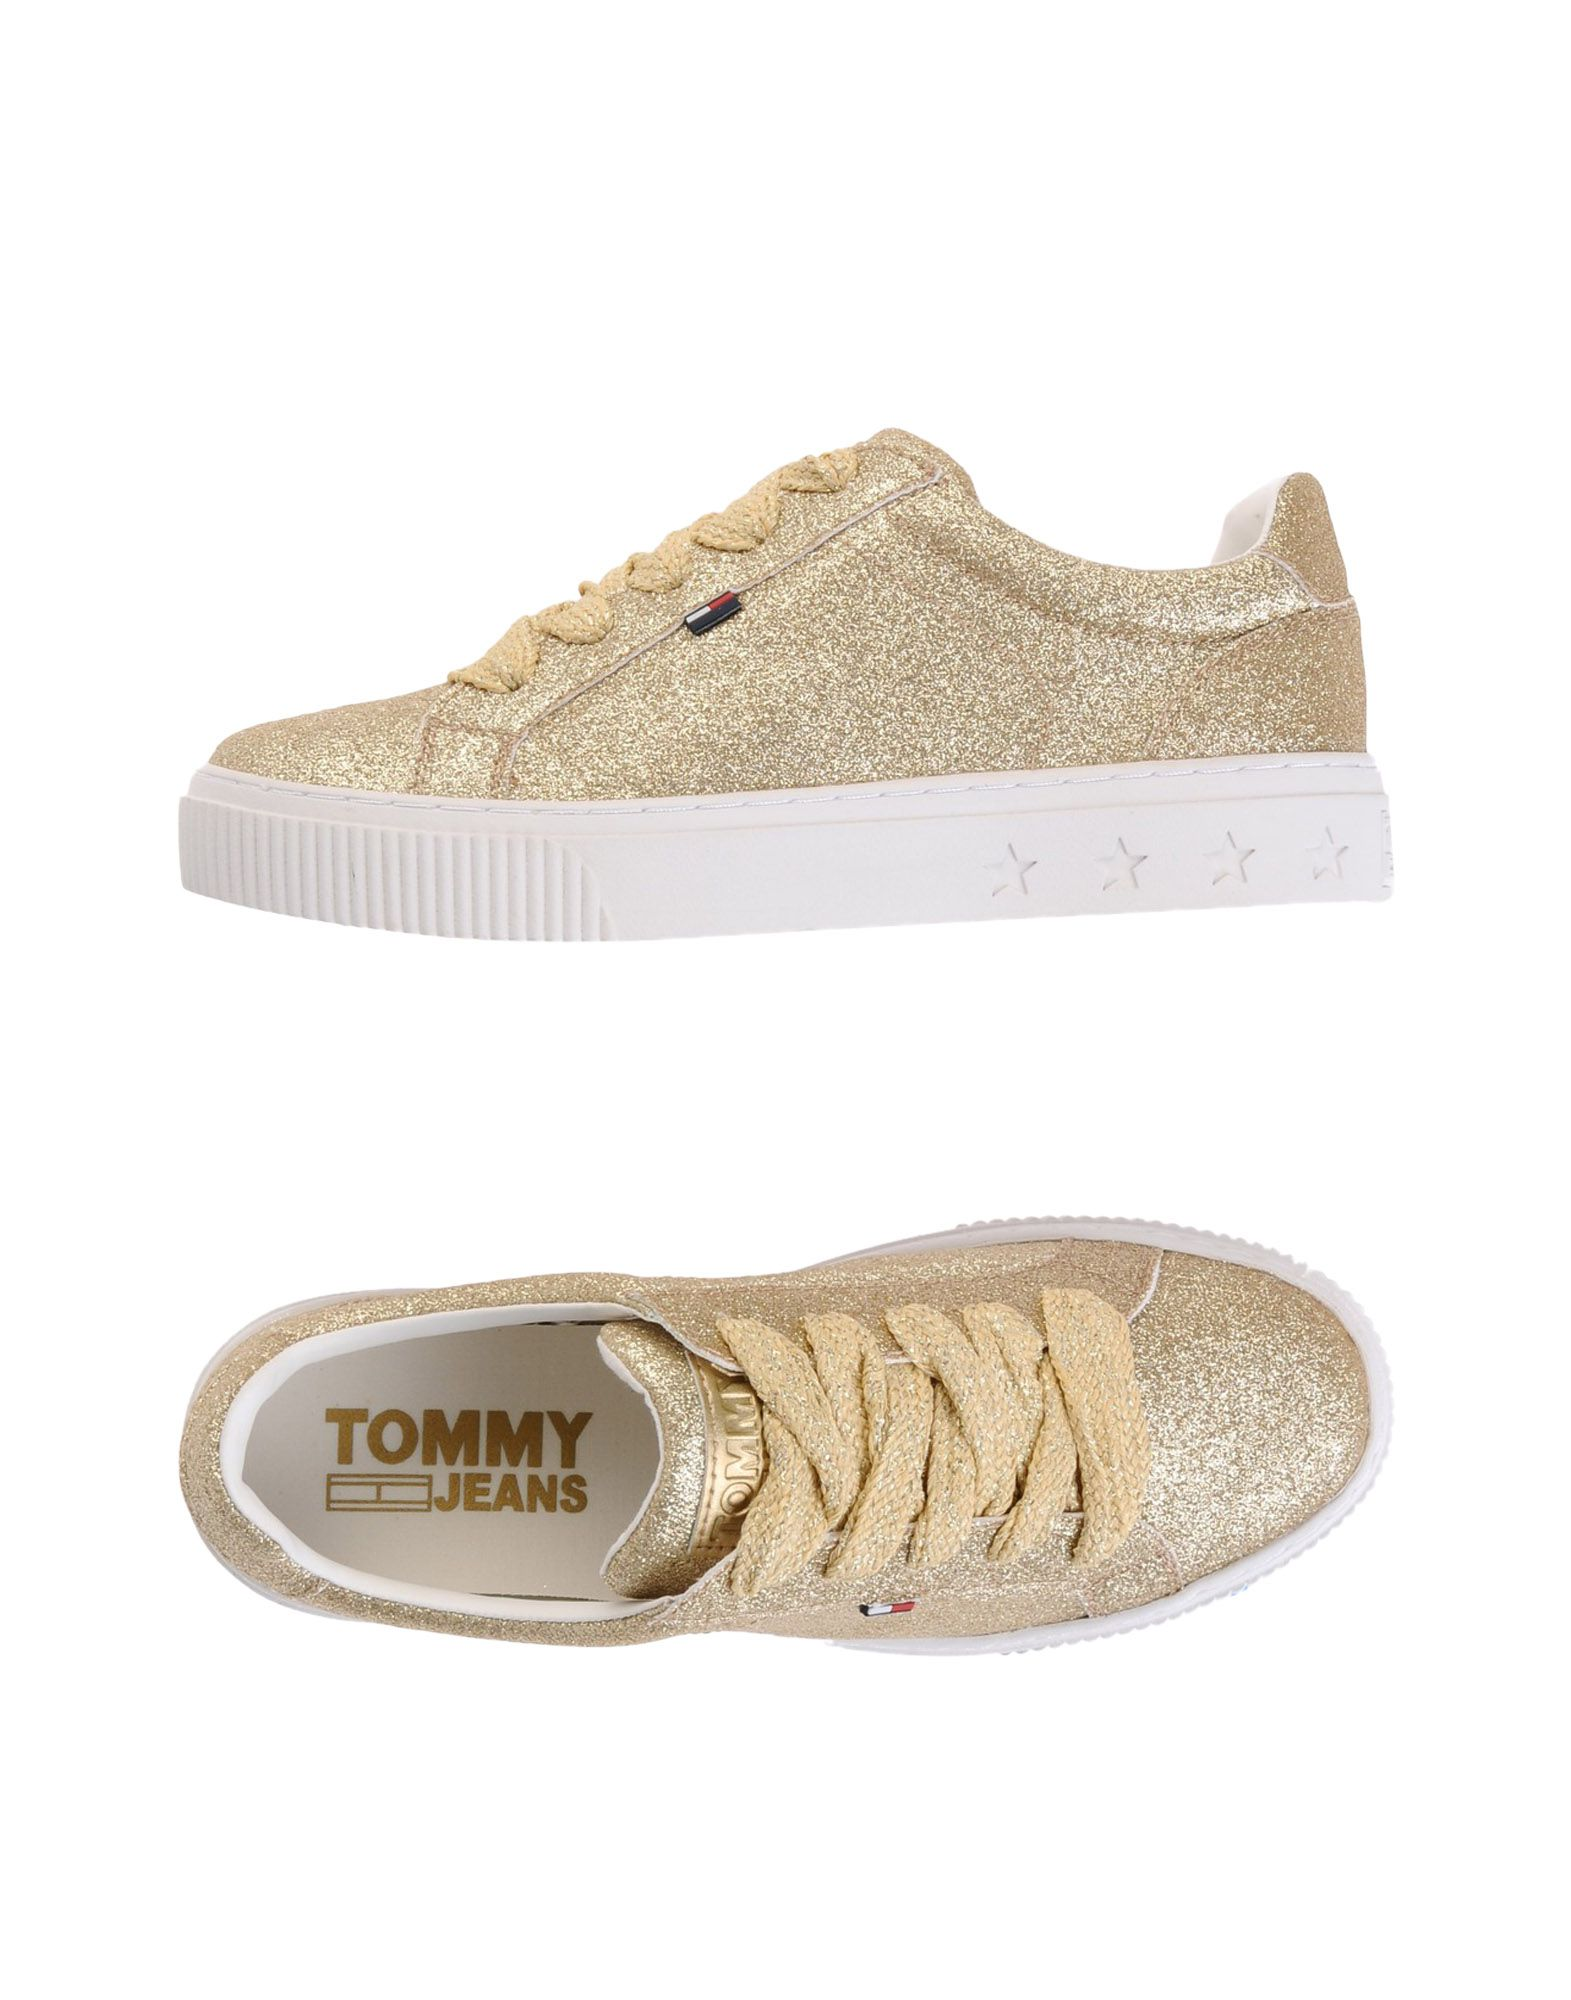 Sneakers Tommy Jeans Tommy Jeans Glitter Sneaker - Femme - Sneakers Tommy Jeans sur